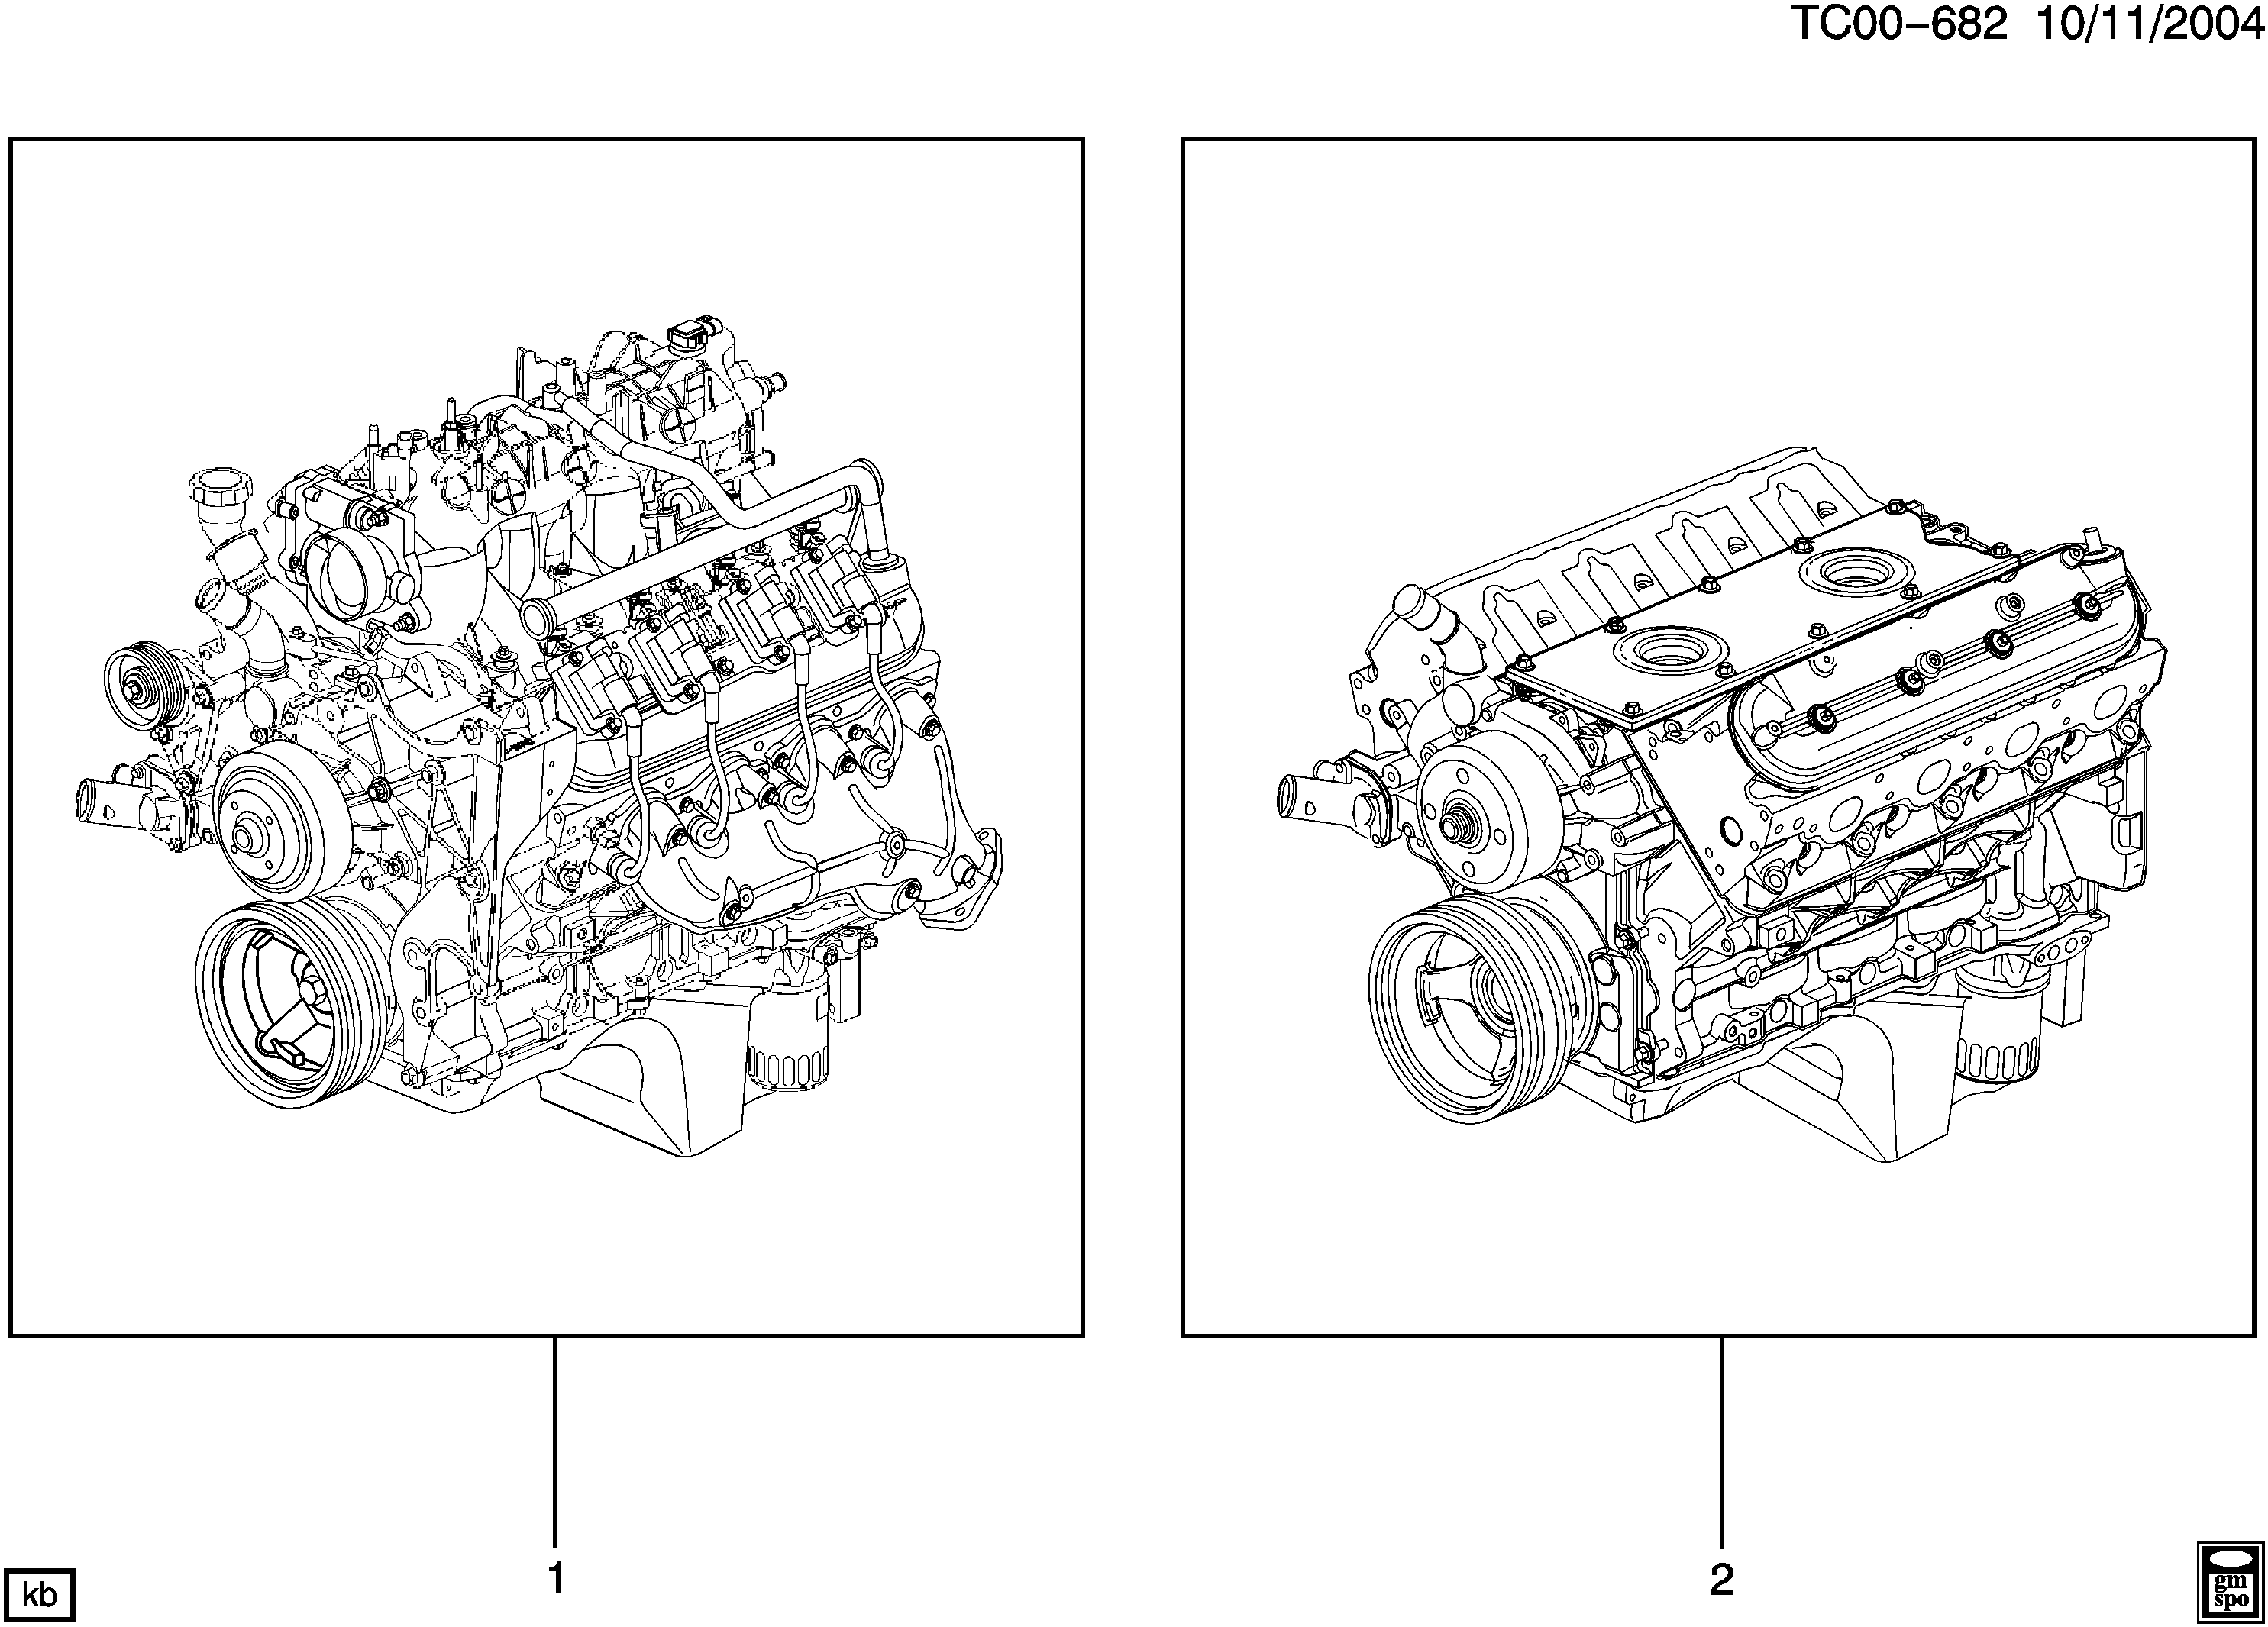 2500hd 6 0 Vortec Engine Oil Cooler Line Replacement The Manual Guide